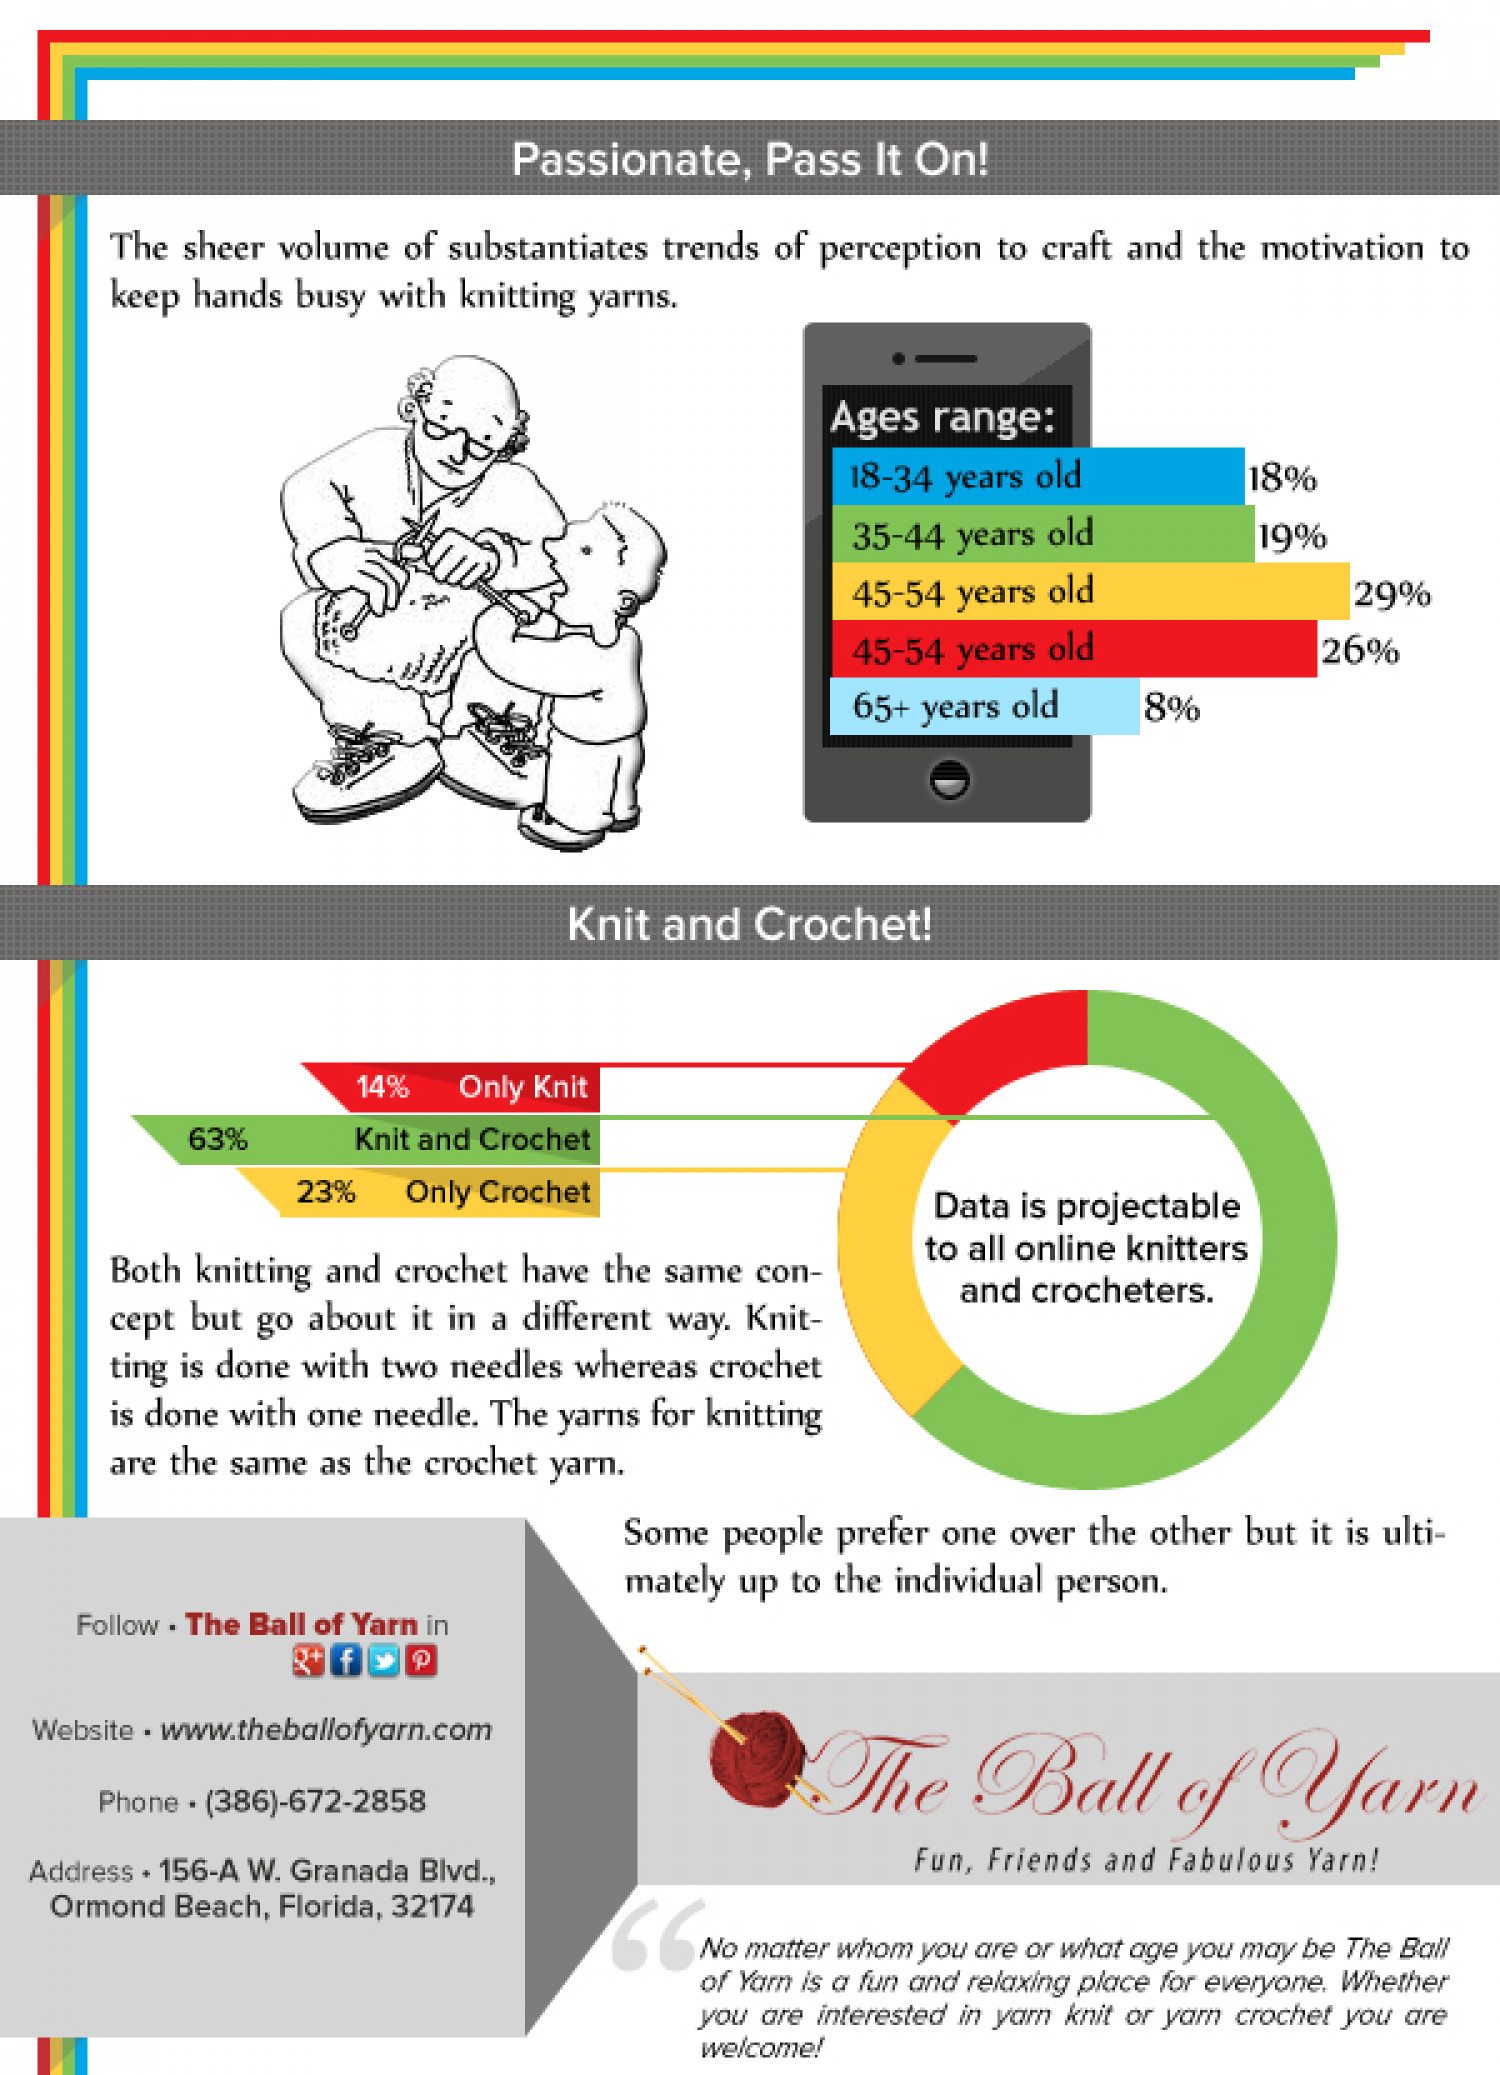 Passion Pass It On Infographic